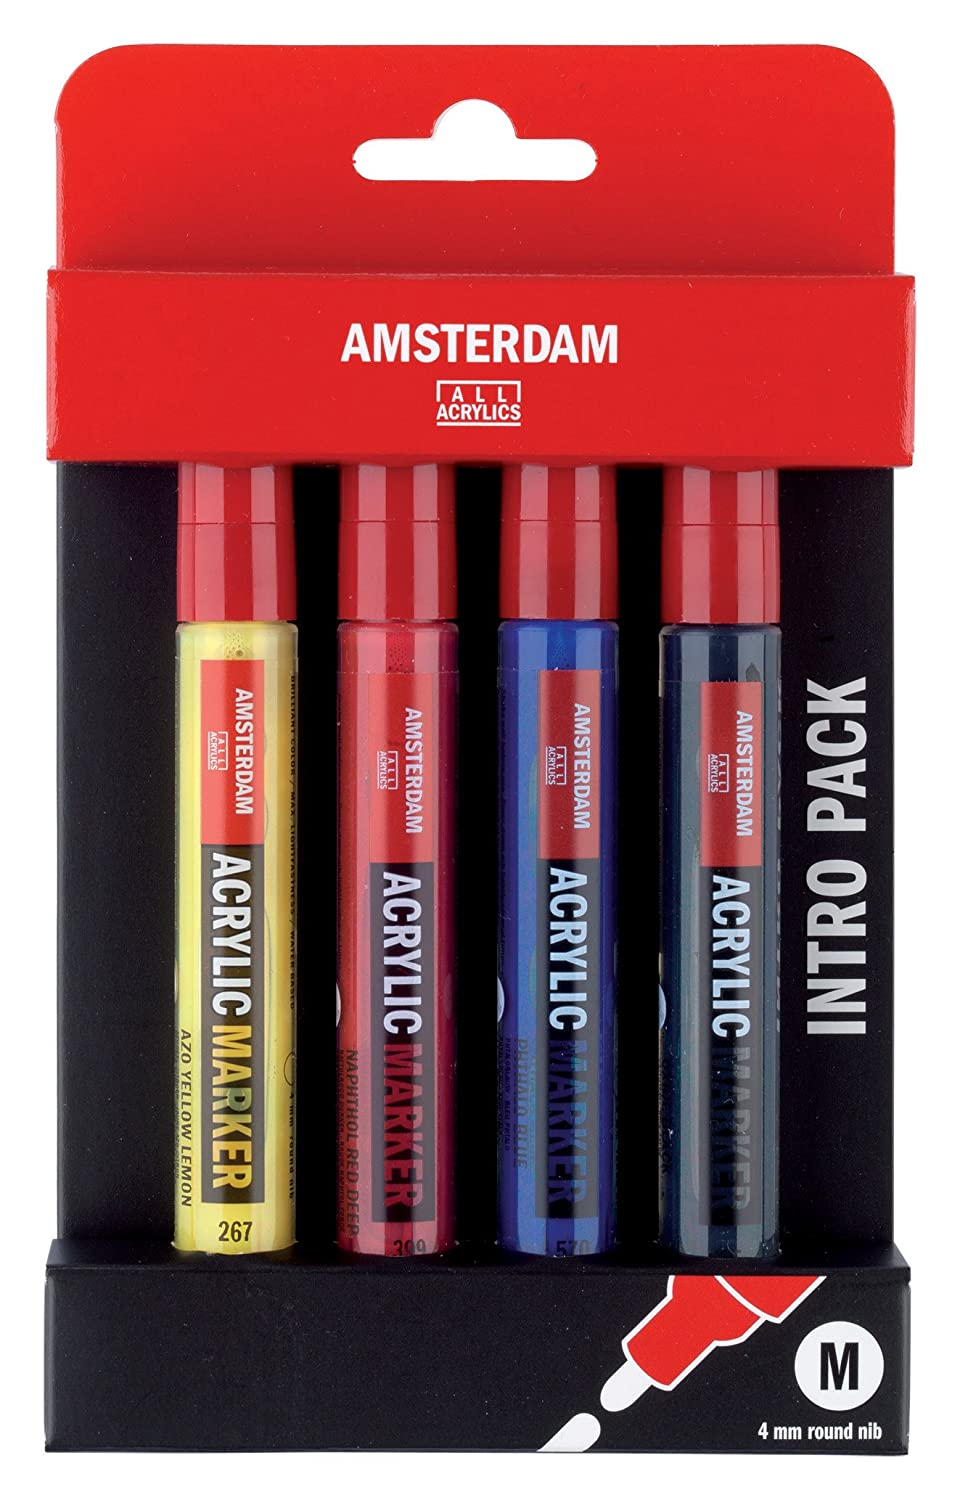 6 by 4mm by Talens Talens Amsterdam All Acrylic Marker Starter Set